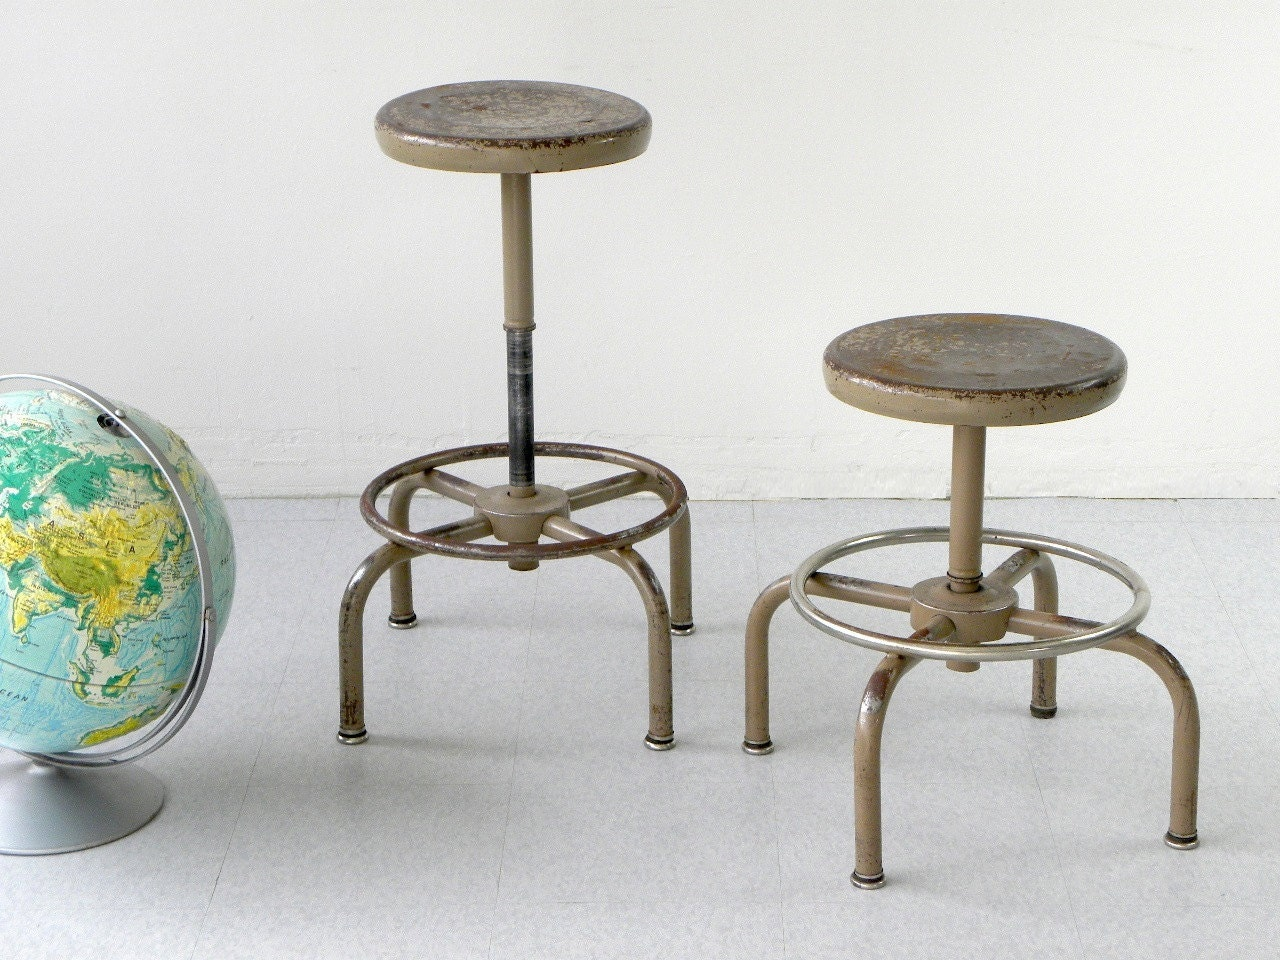 vintage industrial metal shop stool by adjusto by cathodeblue